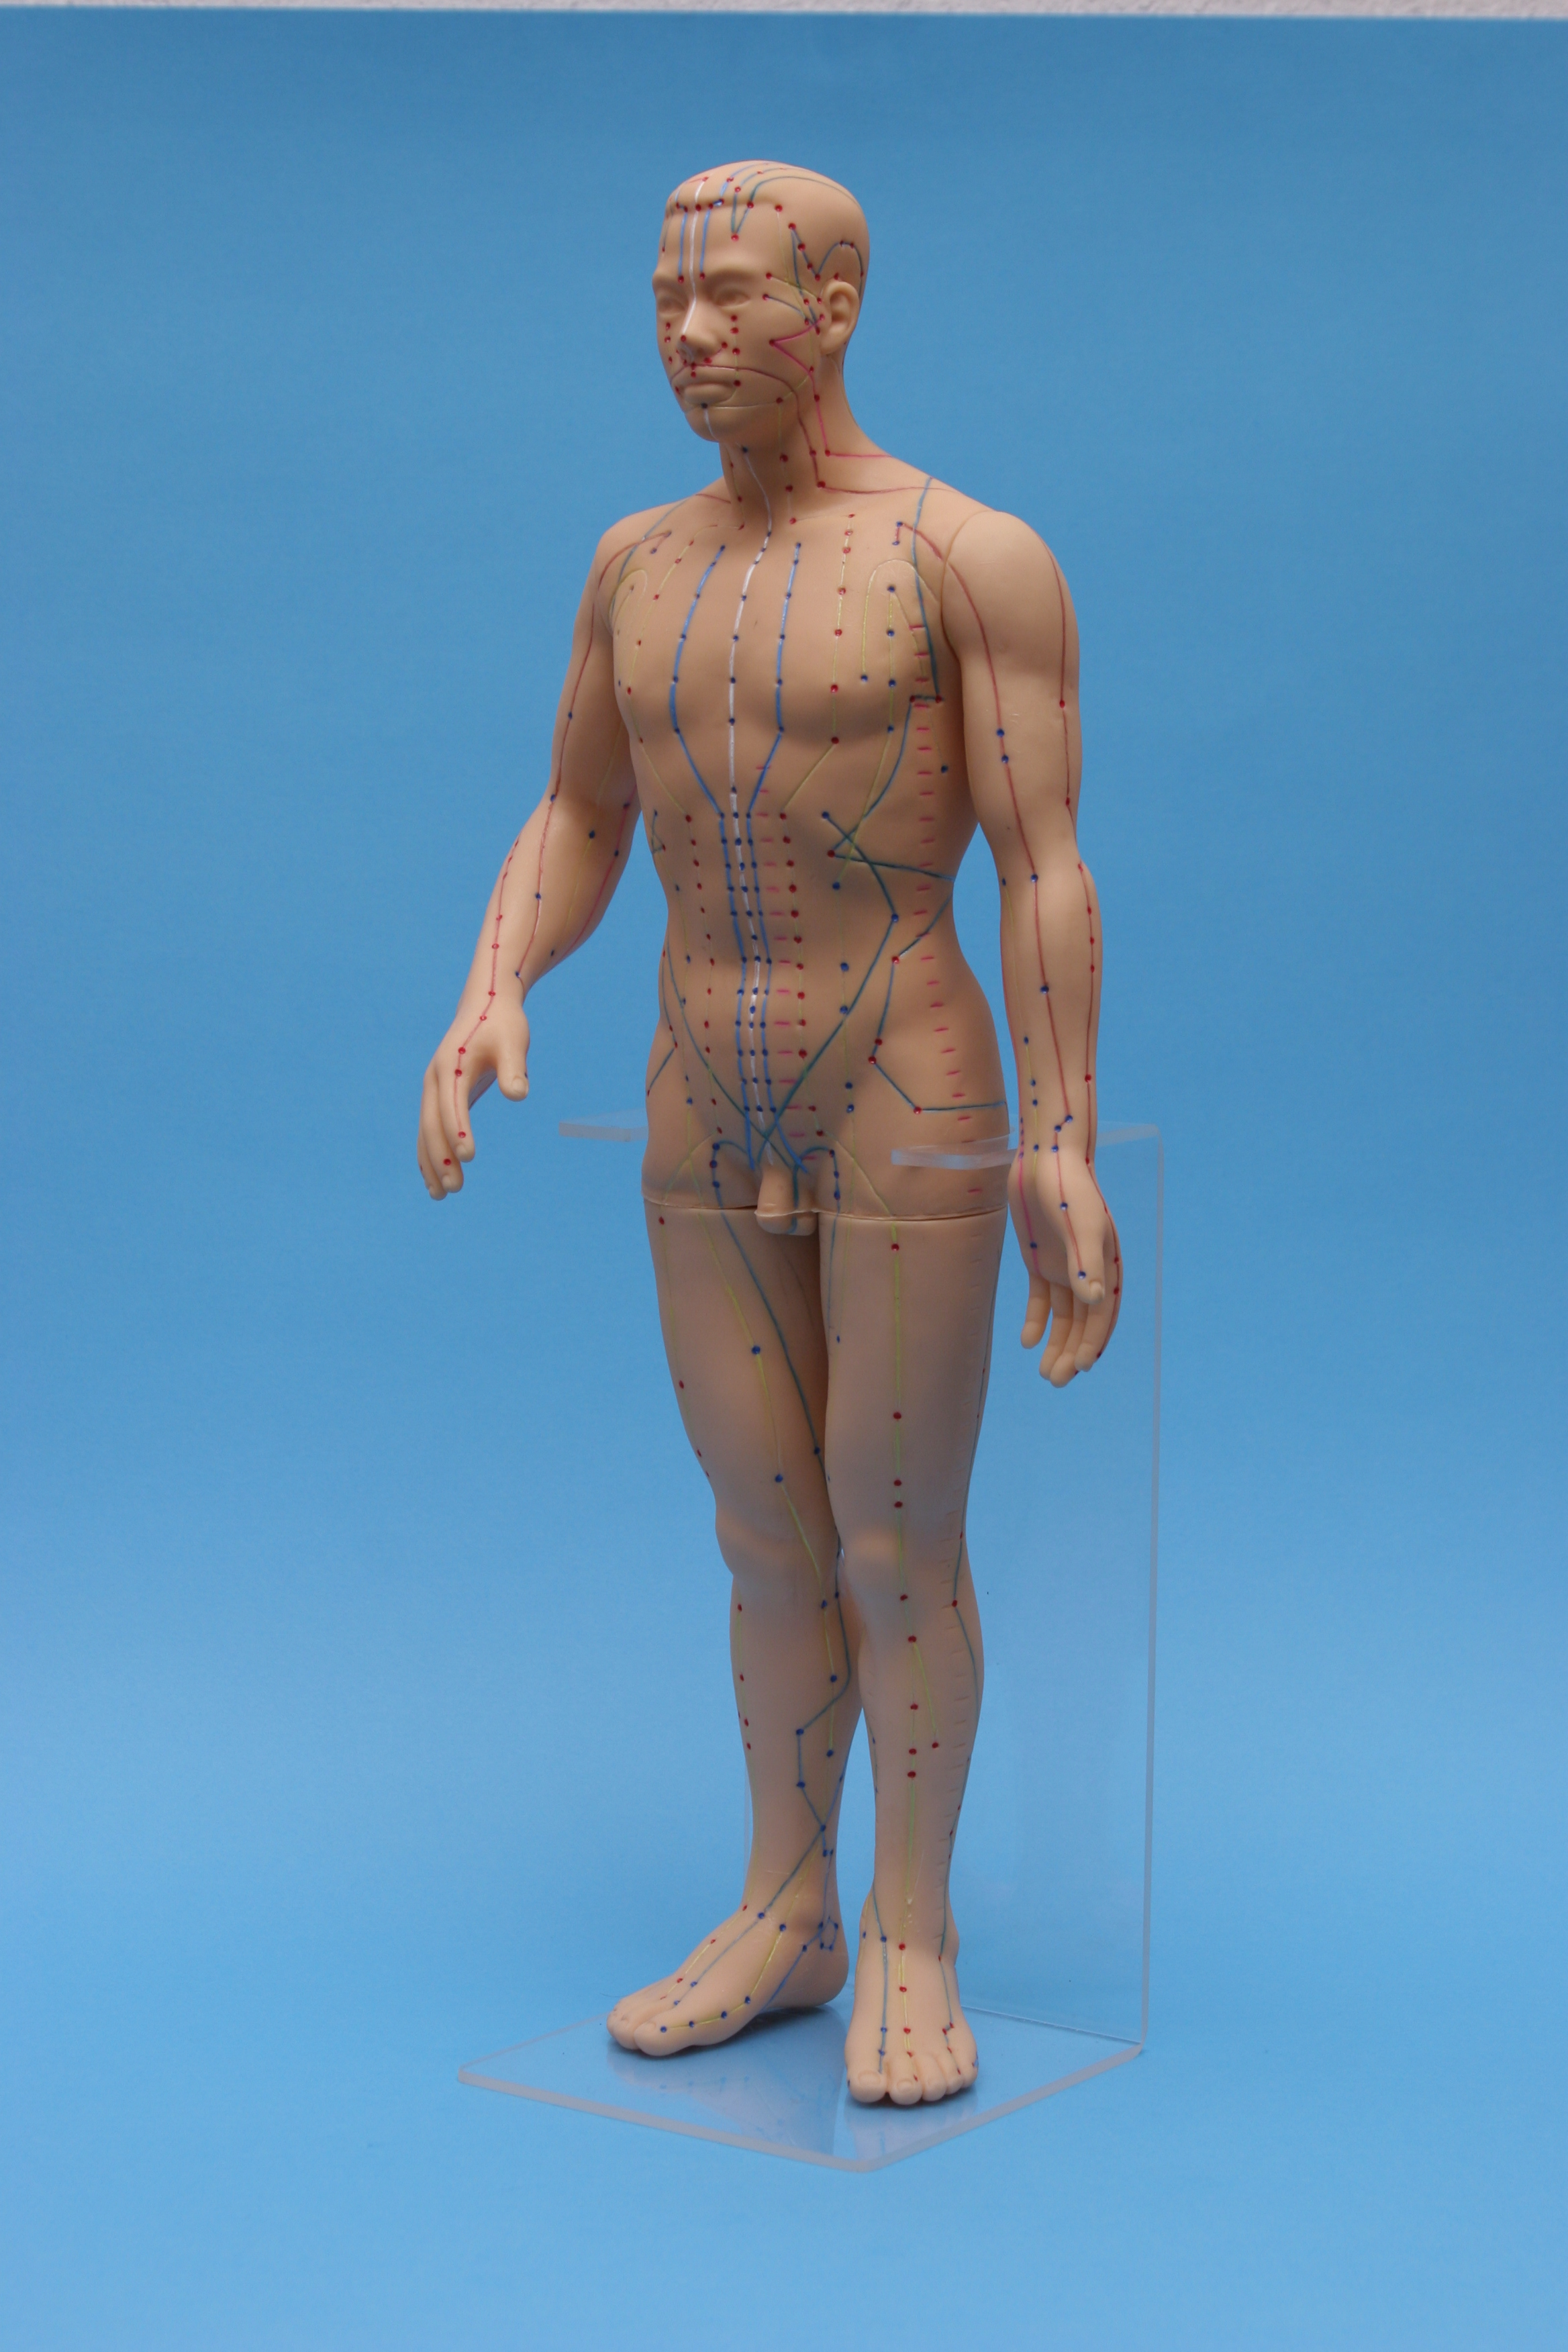 model of man su jok molds su jok needles and acupuncture corporal needles  moxas and massage Su Jok Therapy Association International Su-Jok Therapy Color